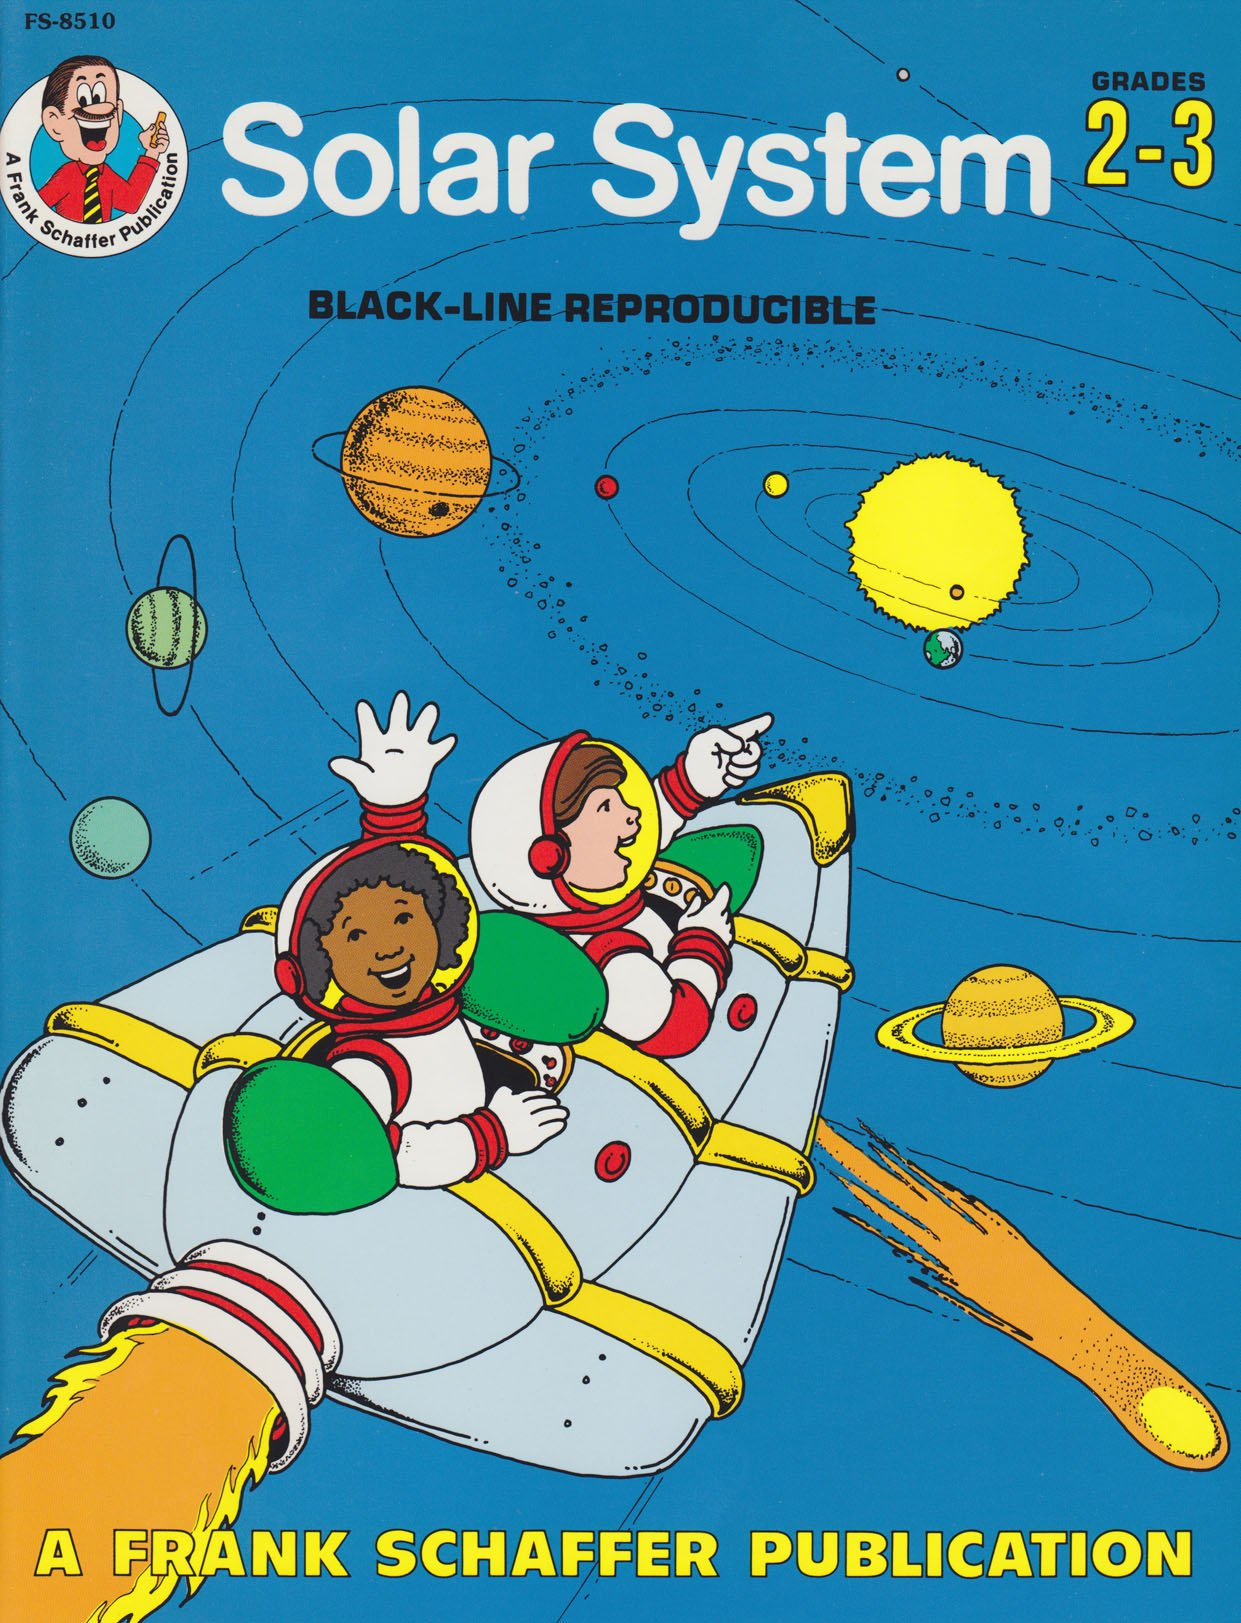 worksheet Frank Schaffer Publications Worksheets solar system black line reproducible a frank schaffer publication grades 2 3 laura phou ron lipking amazon com books